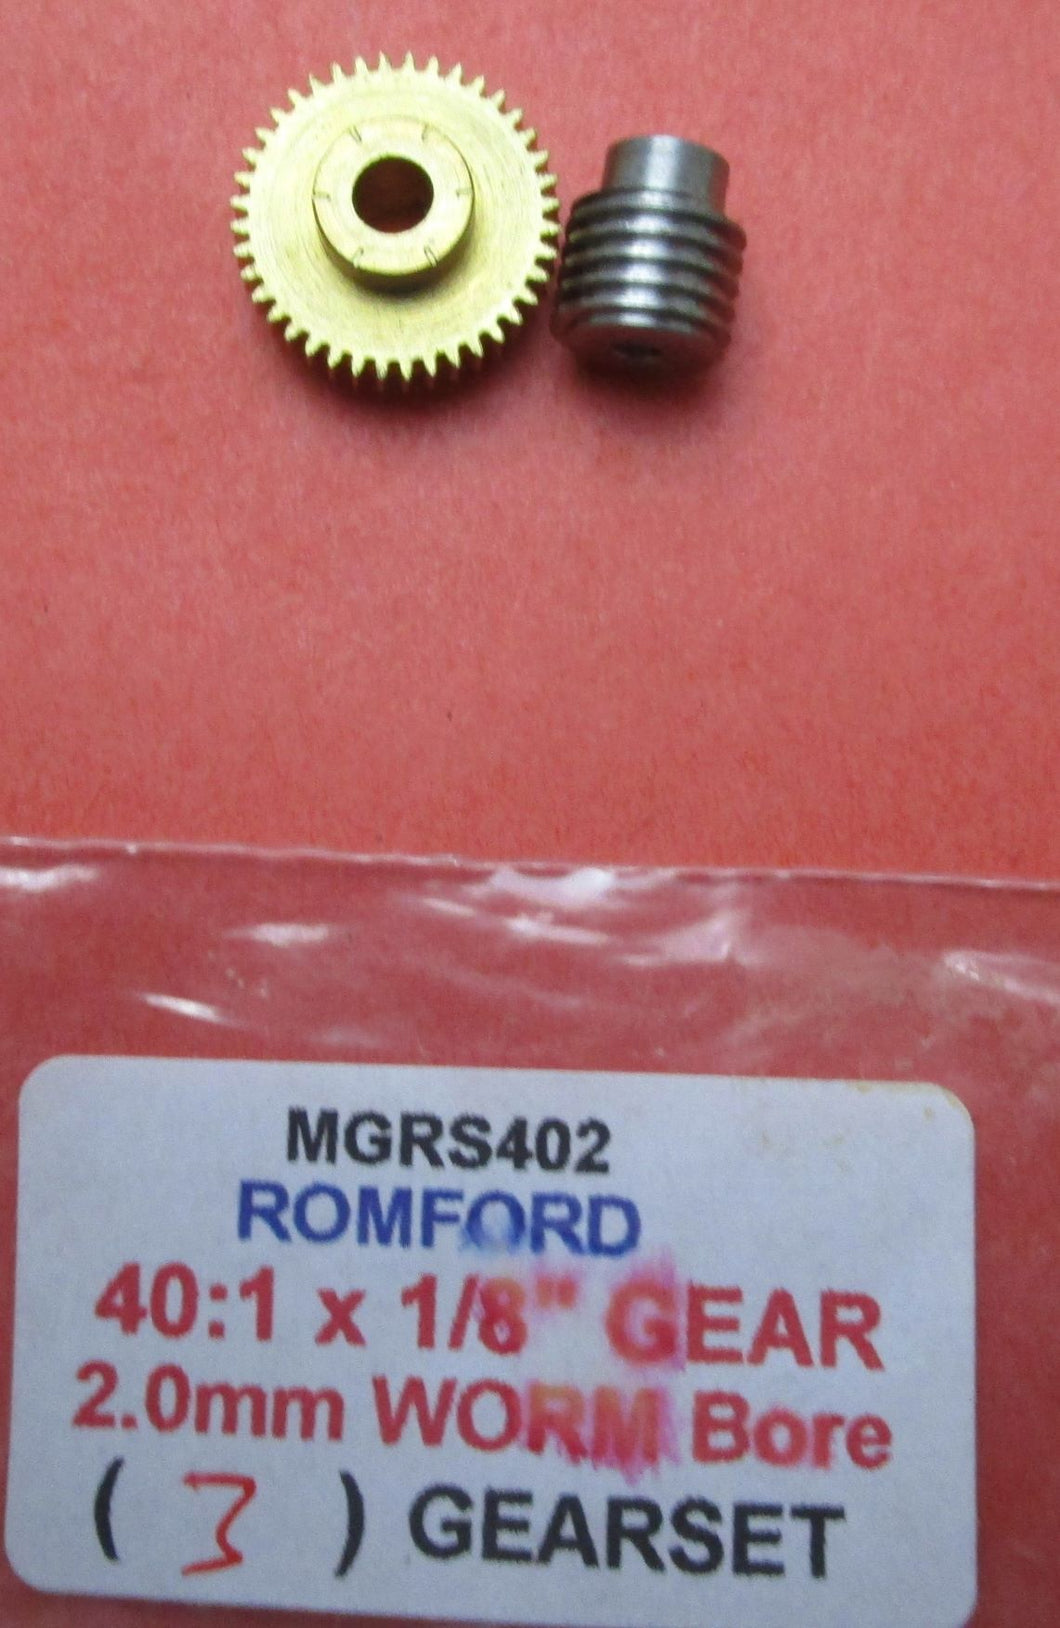 MGRS402 gearset 40:1 2.0mm Steel Worm 1/8